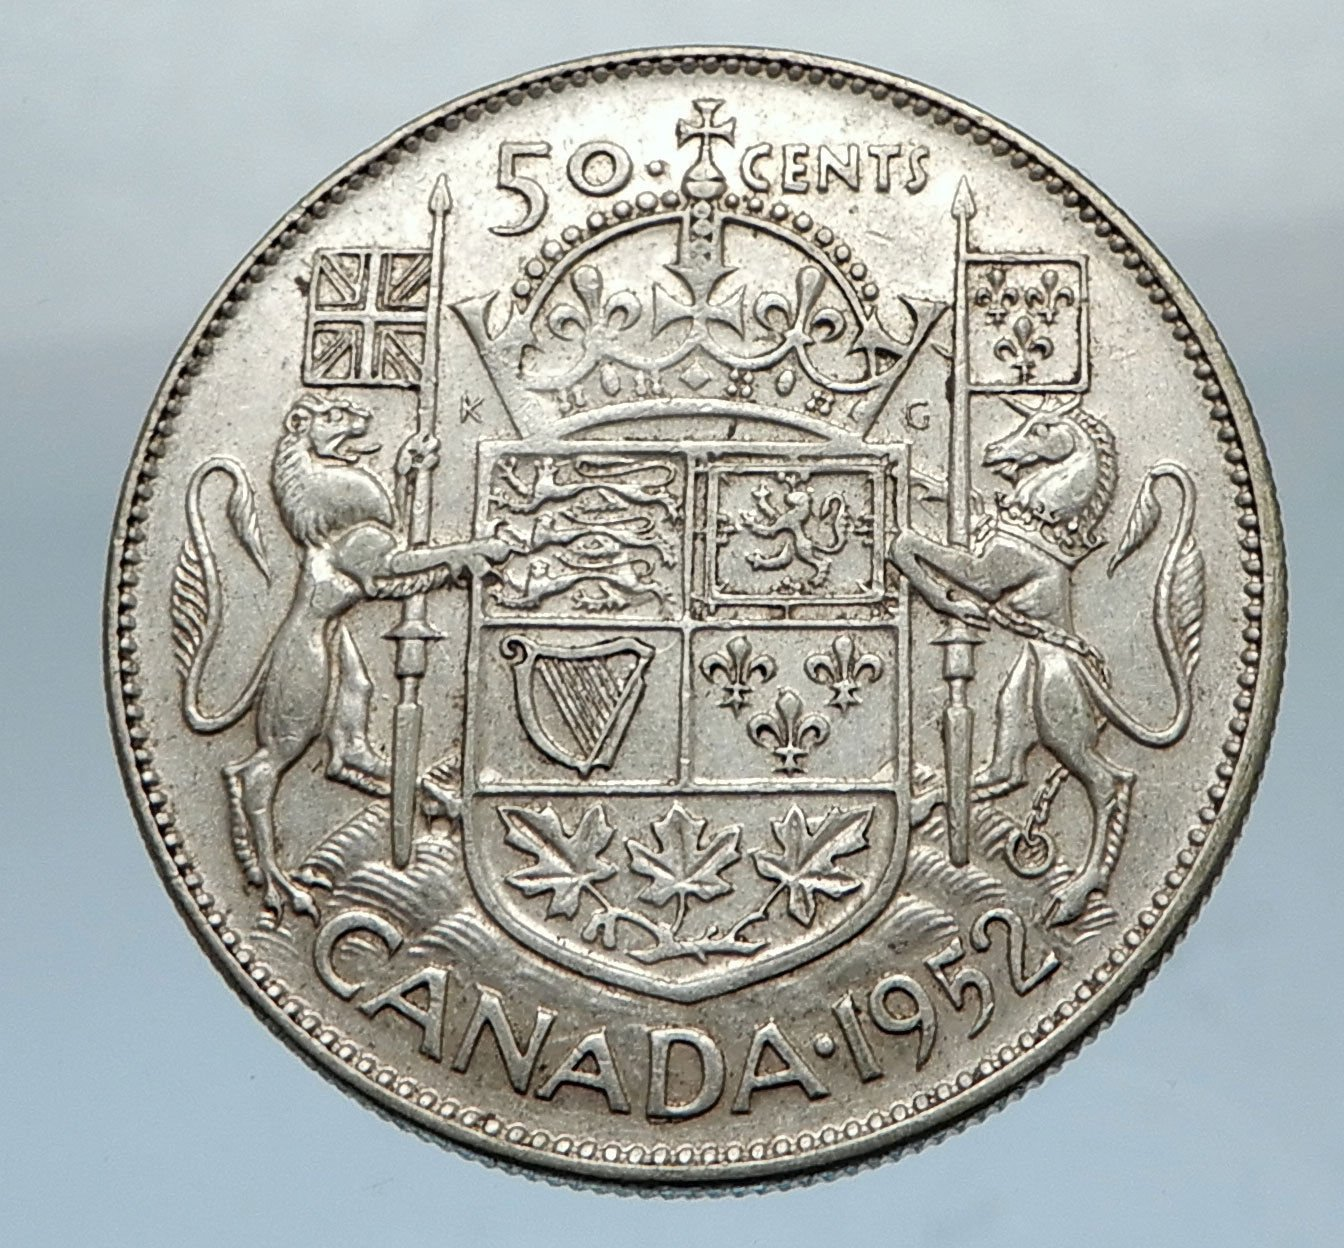 Canada Large Silver 50 Cents Coin Uk Kin Coin Good At Amazons Collectible Coins Store